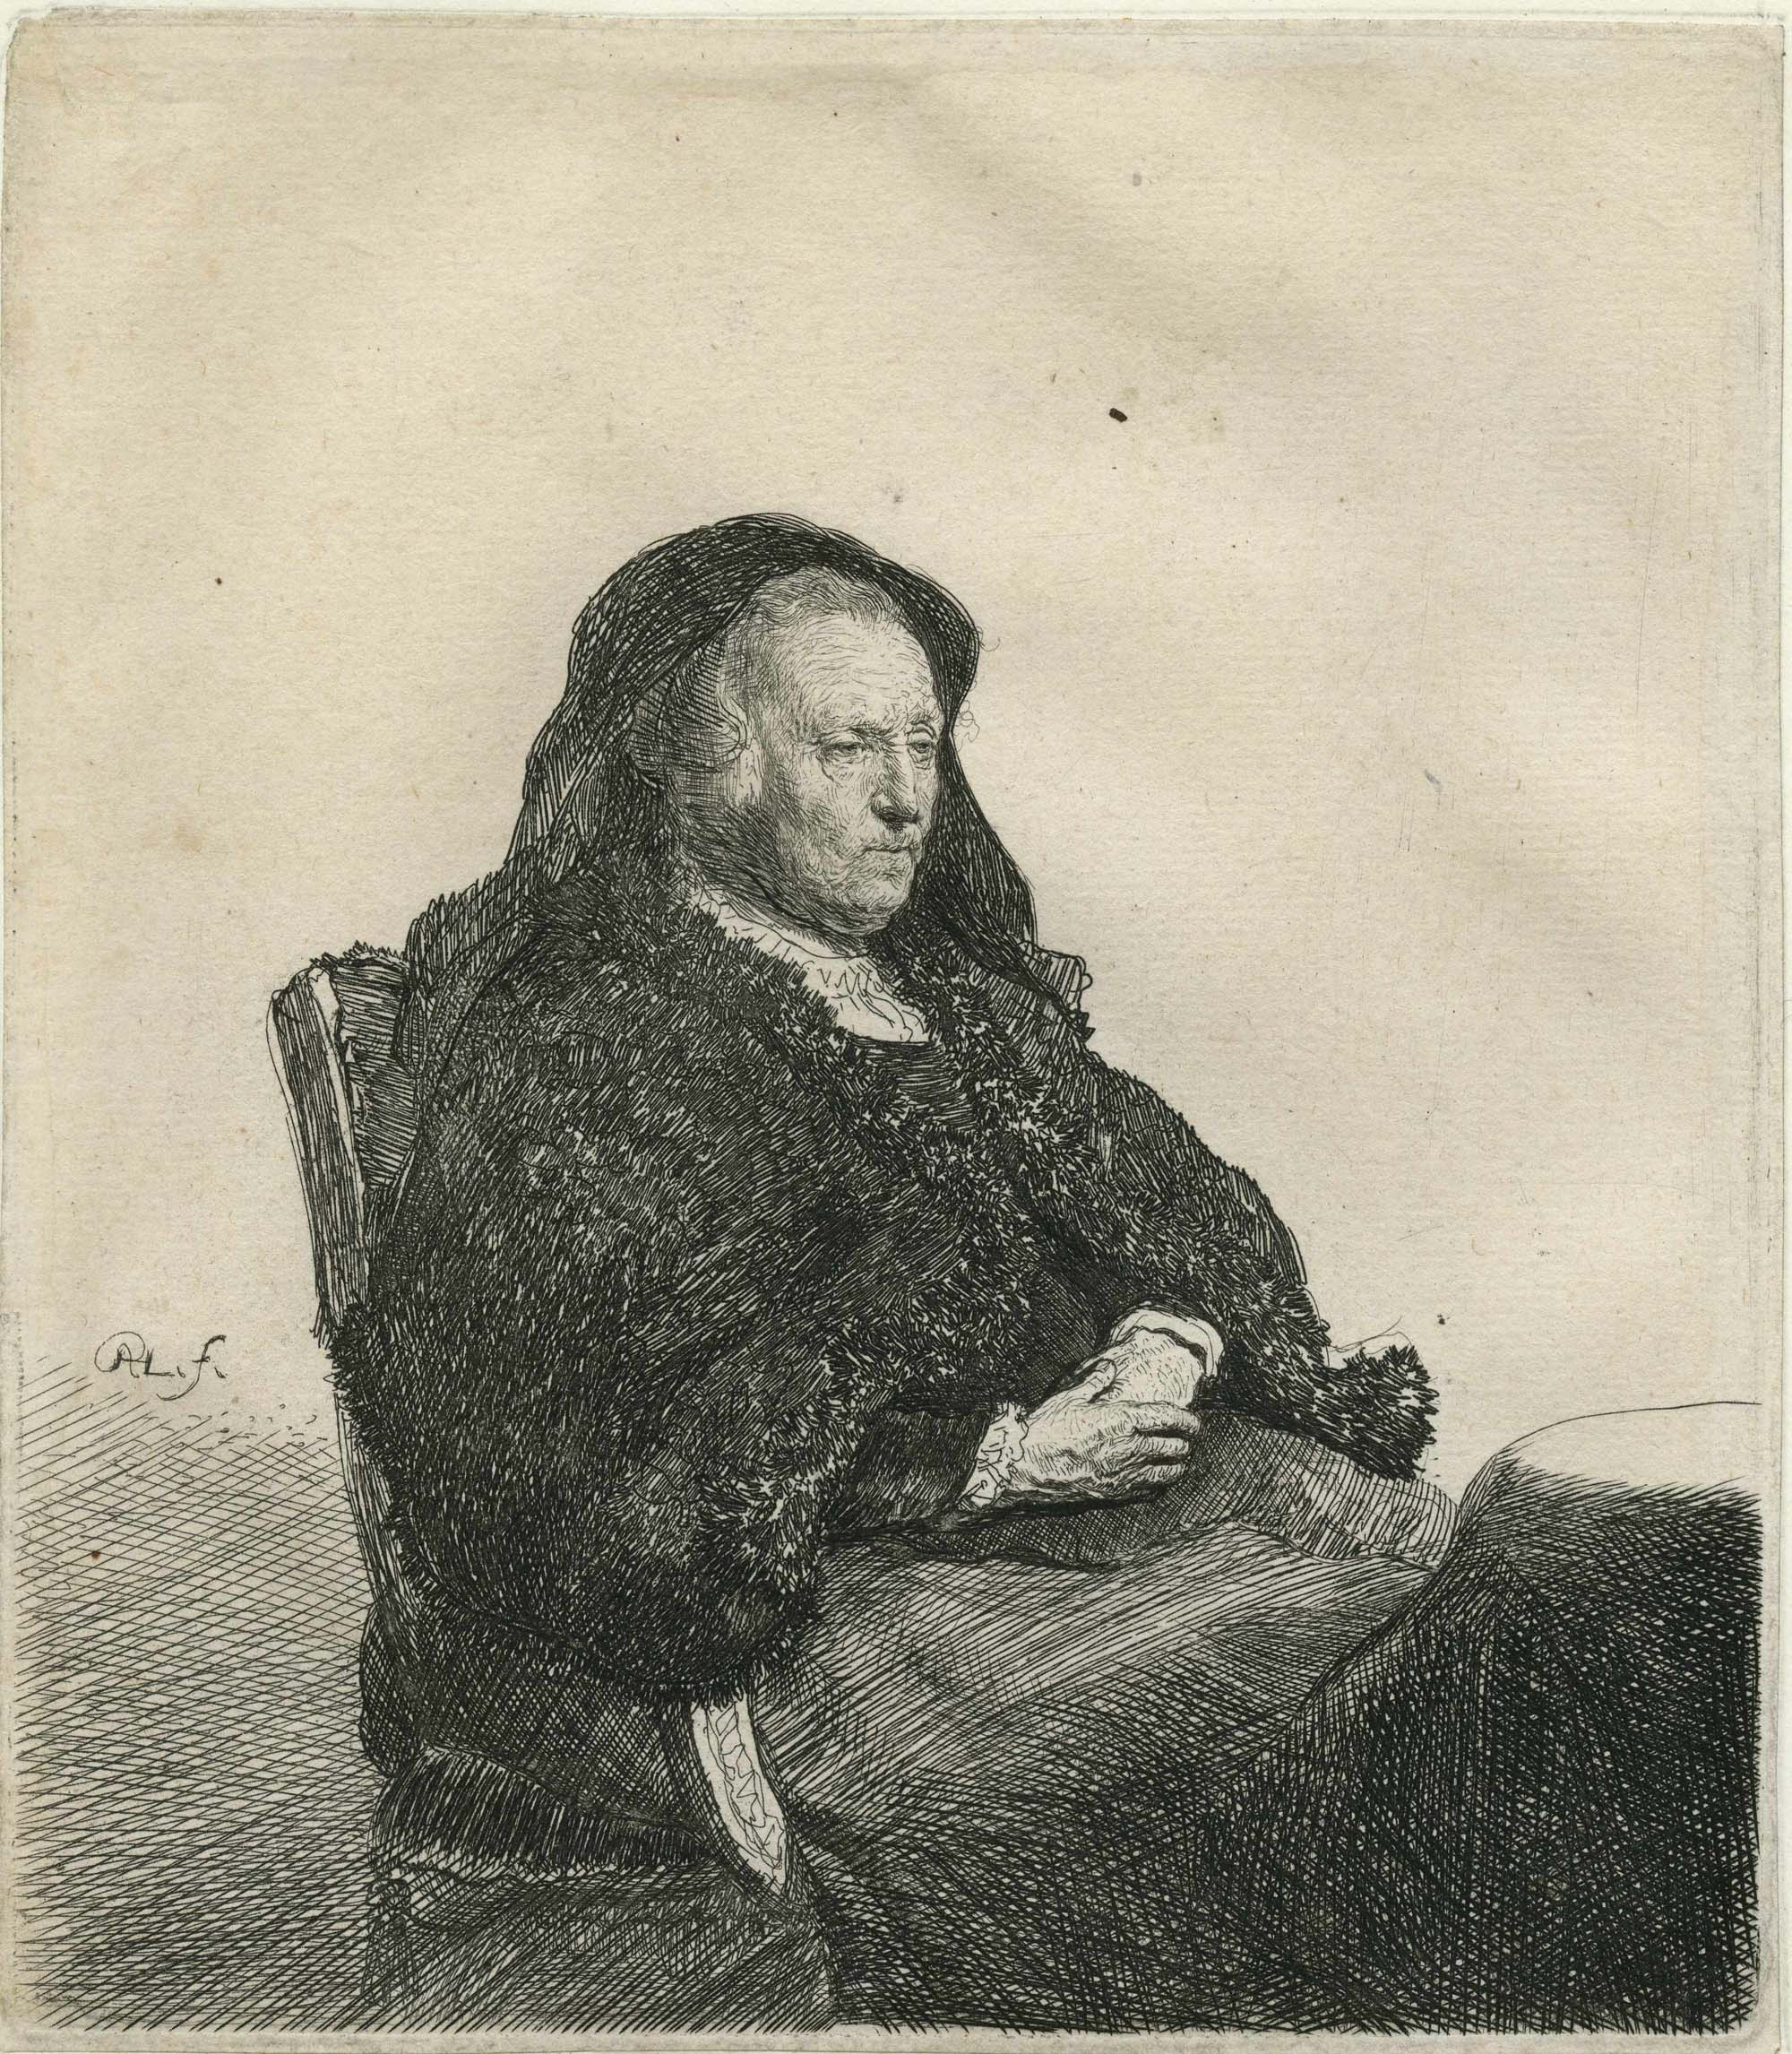 an etching by Rembrandt of a seated woman in a veil